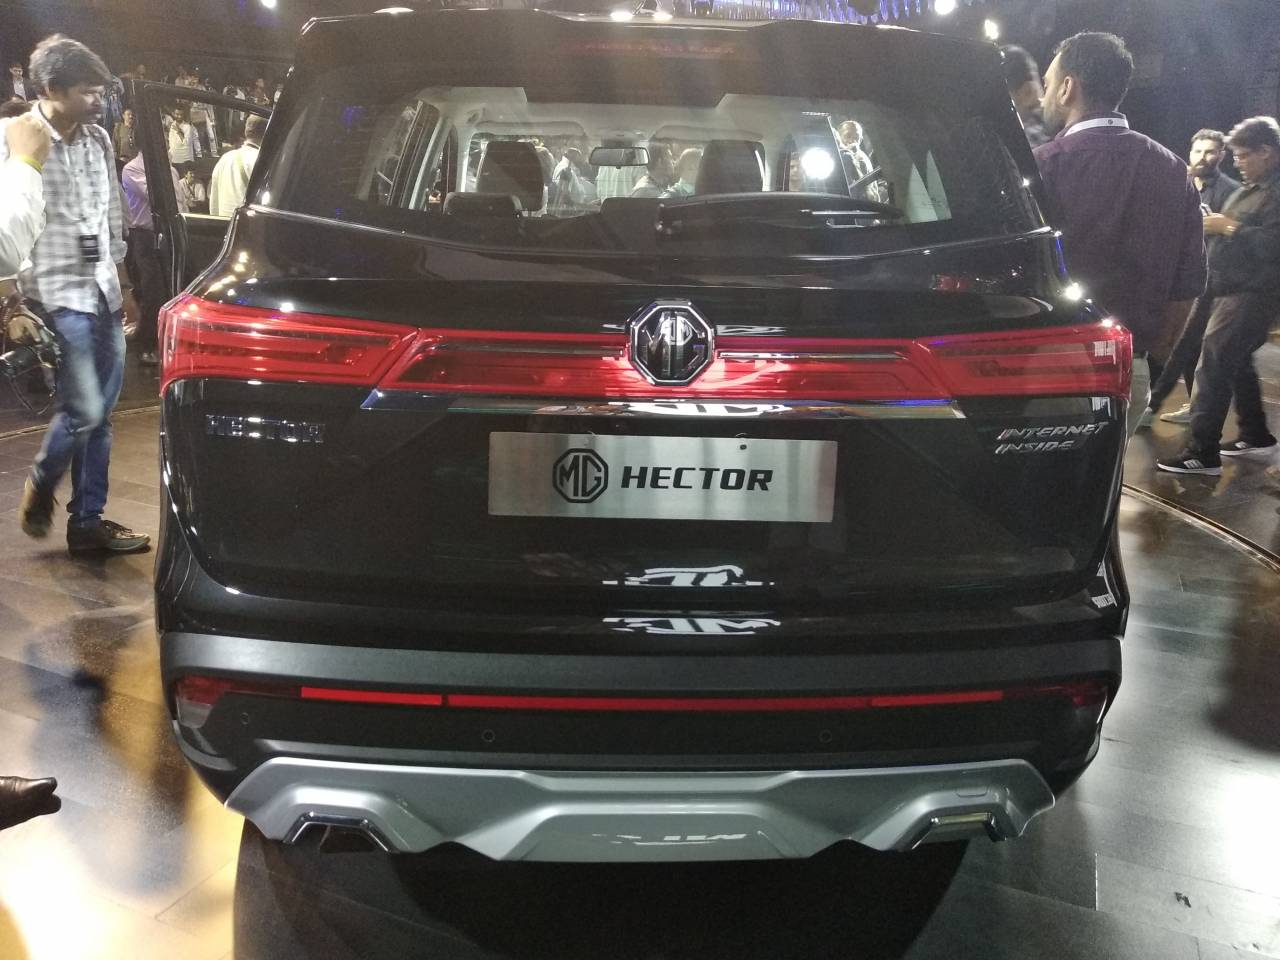 The petrol engine is expected to be an in-house developed unit. This engine will be a 1.5 litre unit that will generate peak power of 143hp and is mated to a six speed transmission. Mileage is expected to be 13-15 kmpl. Pic courtesy: Moneycontrol